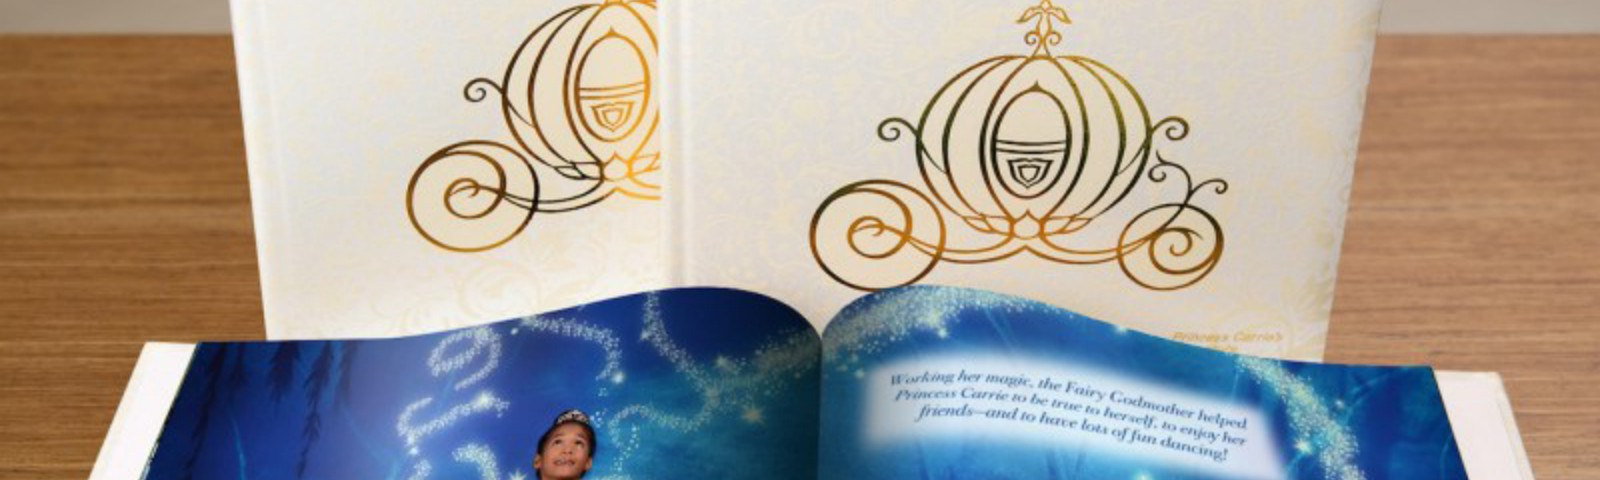 Personalized Storybook at the Disney PhotoPass Studio in Disney Springs